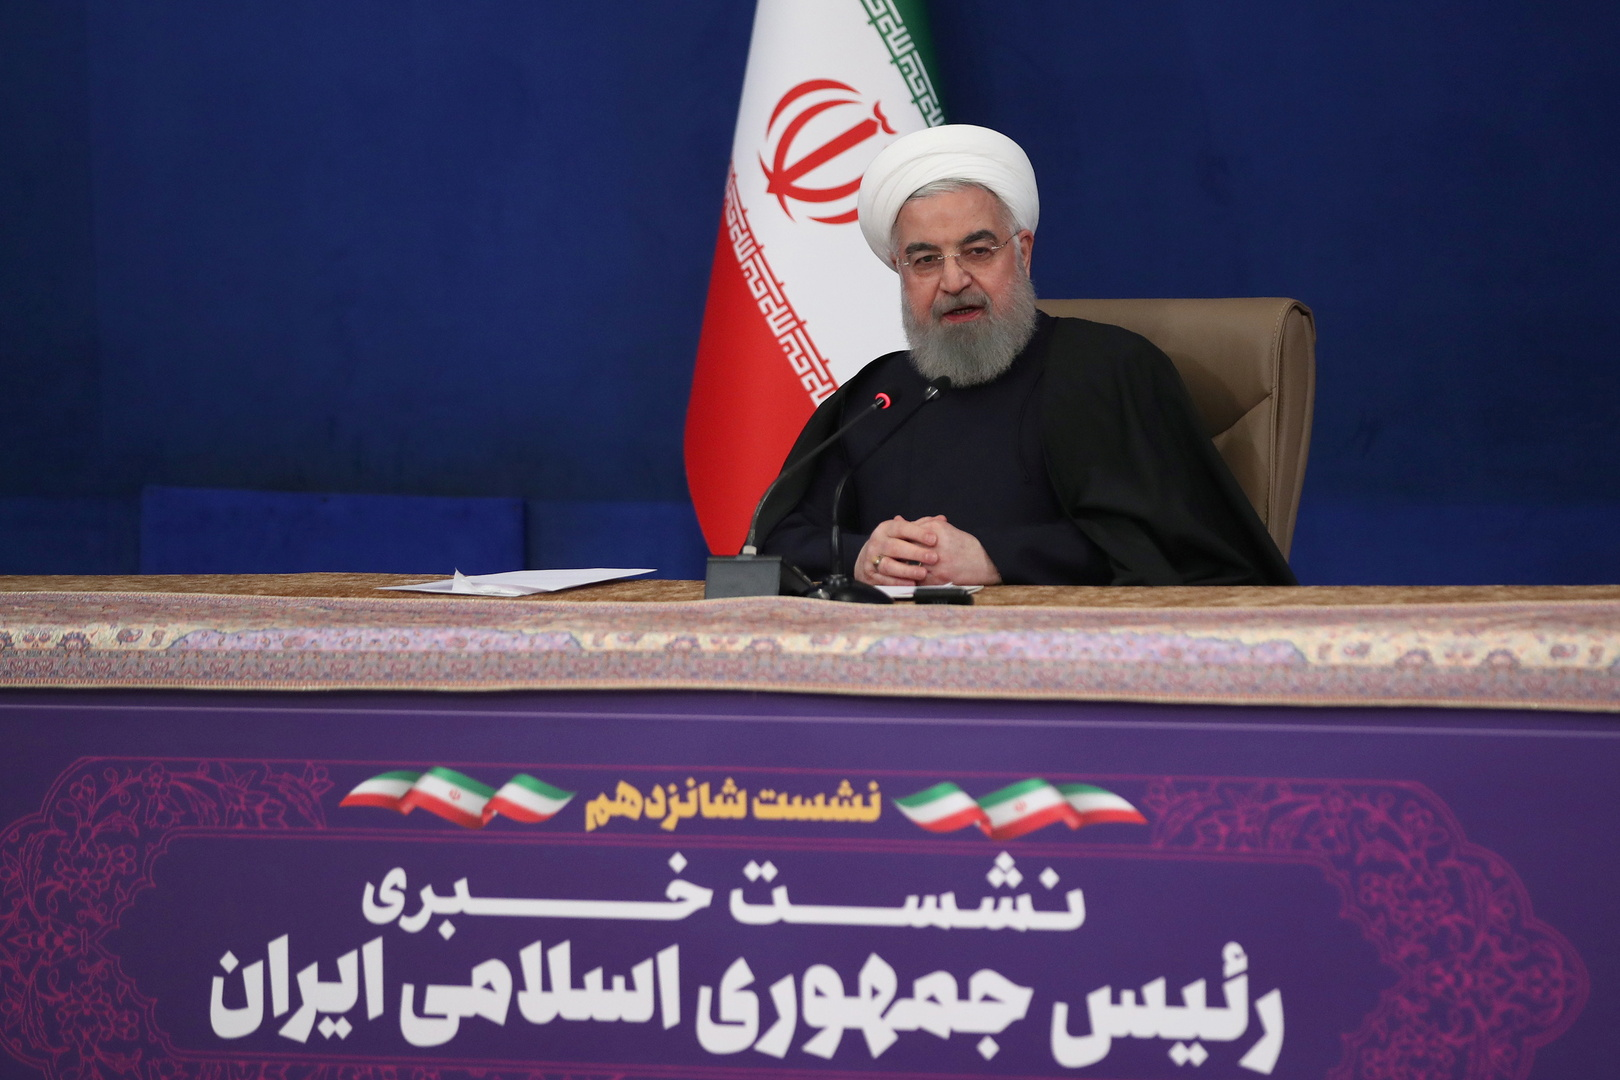 Rouhani: The evil leader leading the economic war on Iran is living the last days of his political life